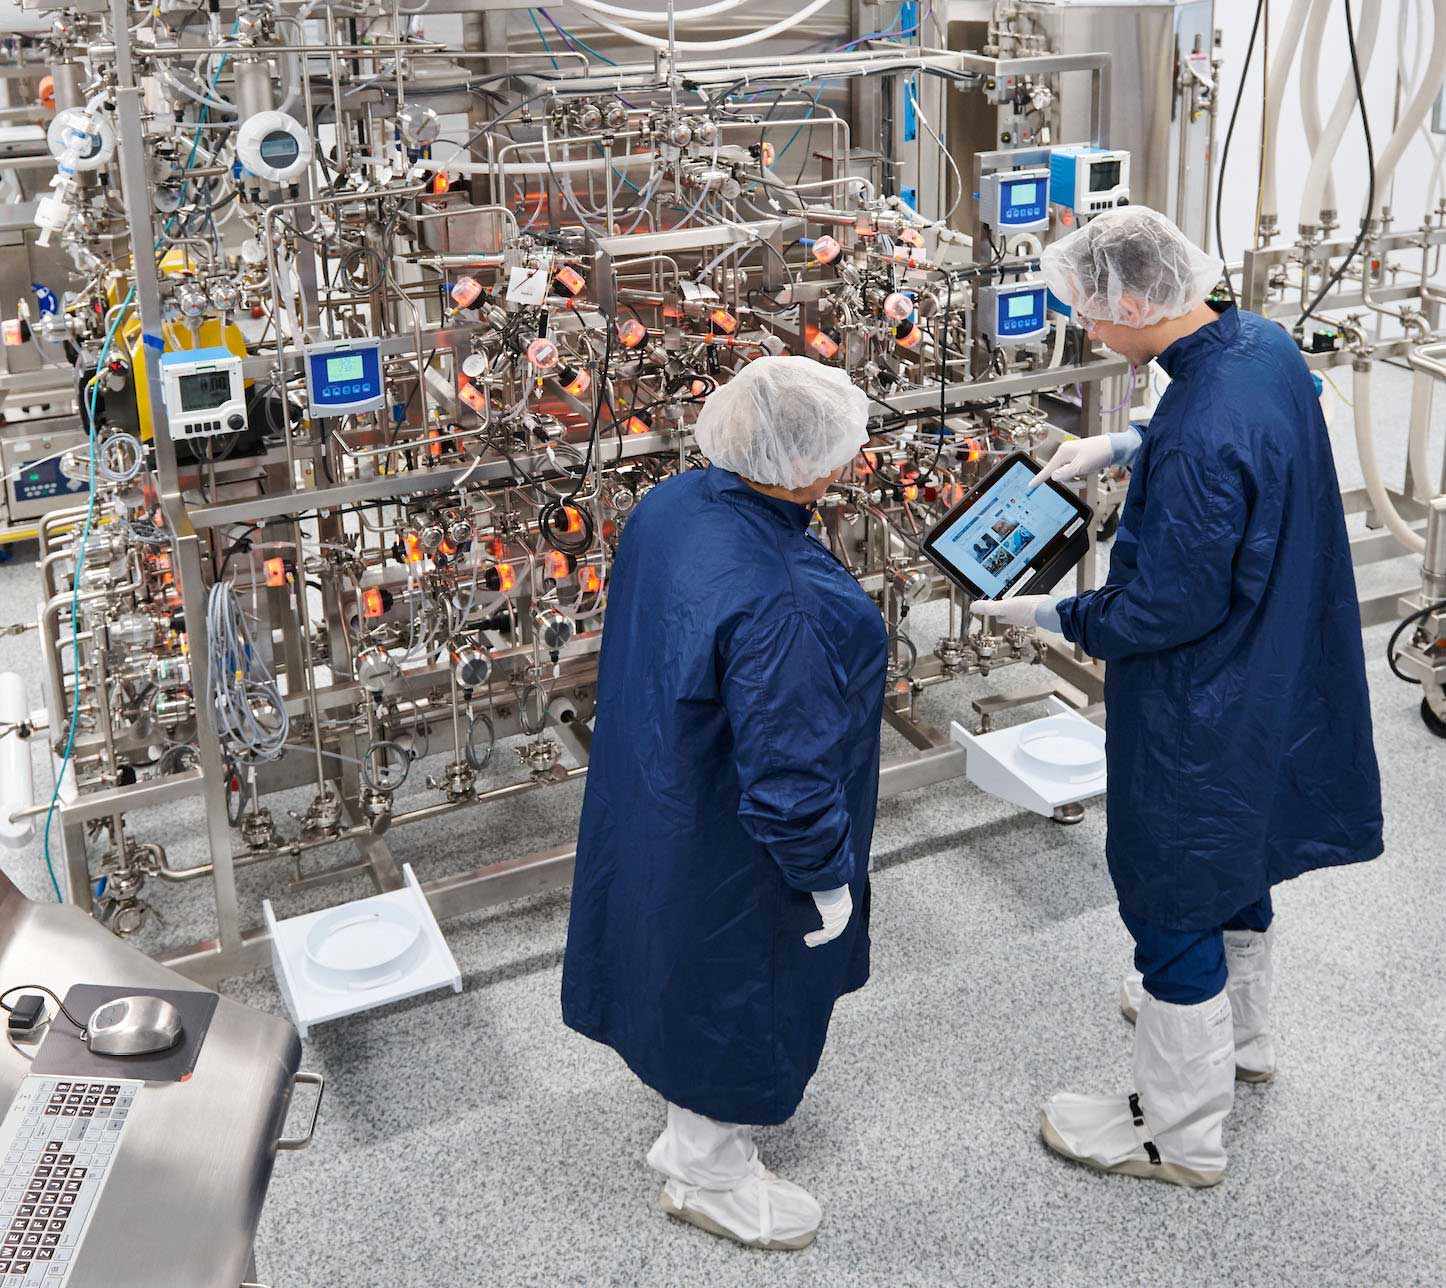 Sanofi opens its first digitally-enabled, continuous manufacturing facility; ushers in next generation of biotech manufacturing